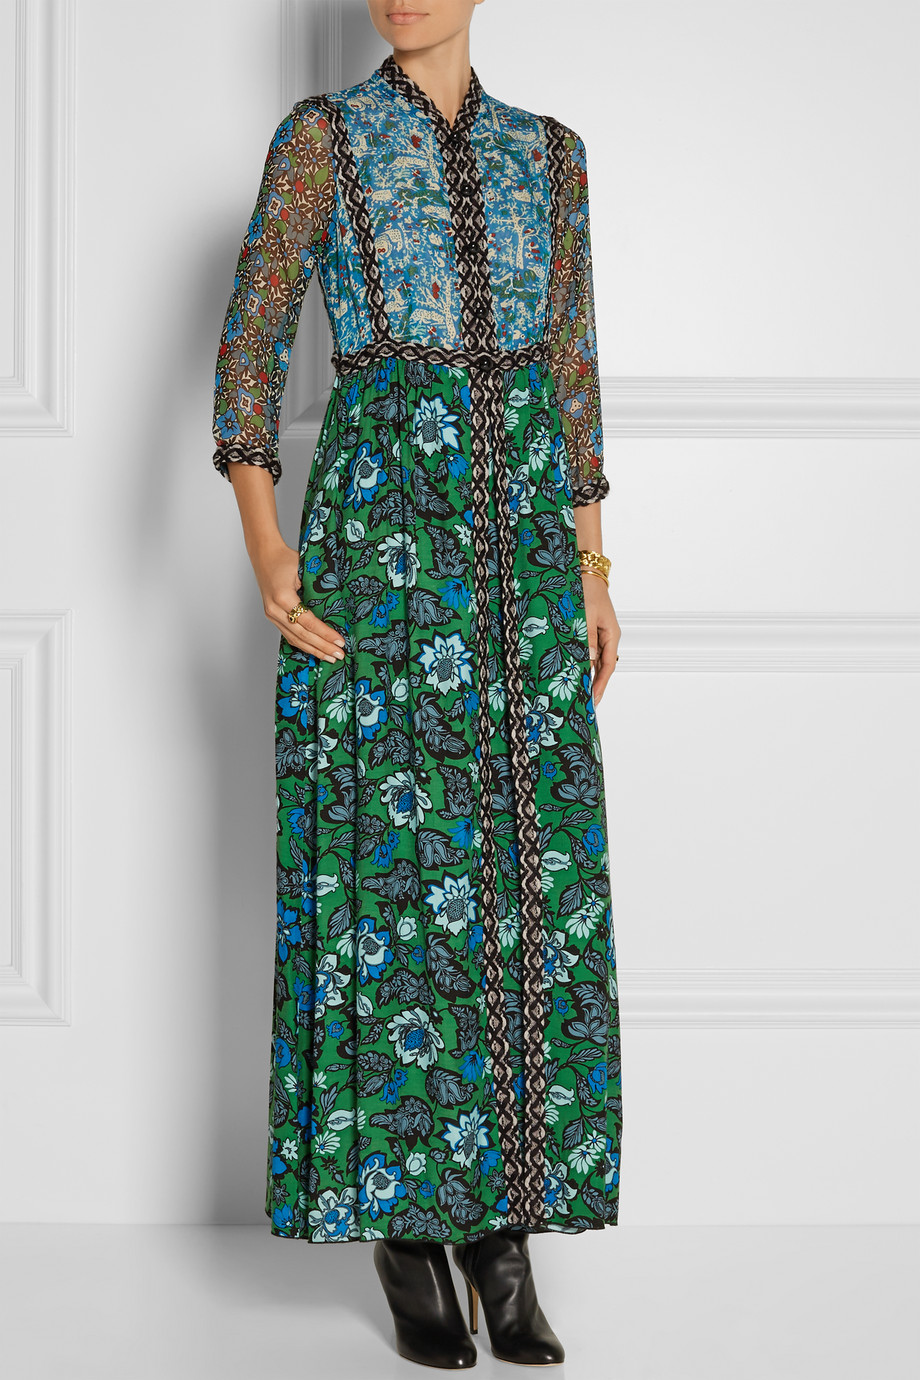 Anna Sui Printed Crinkled Silk-Chiffon and Twill Maxi Dress, Green/Blue, Women's, Size: 4